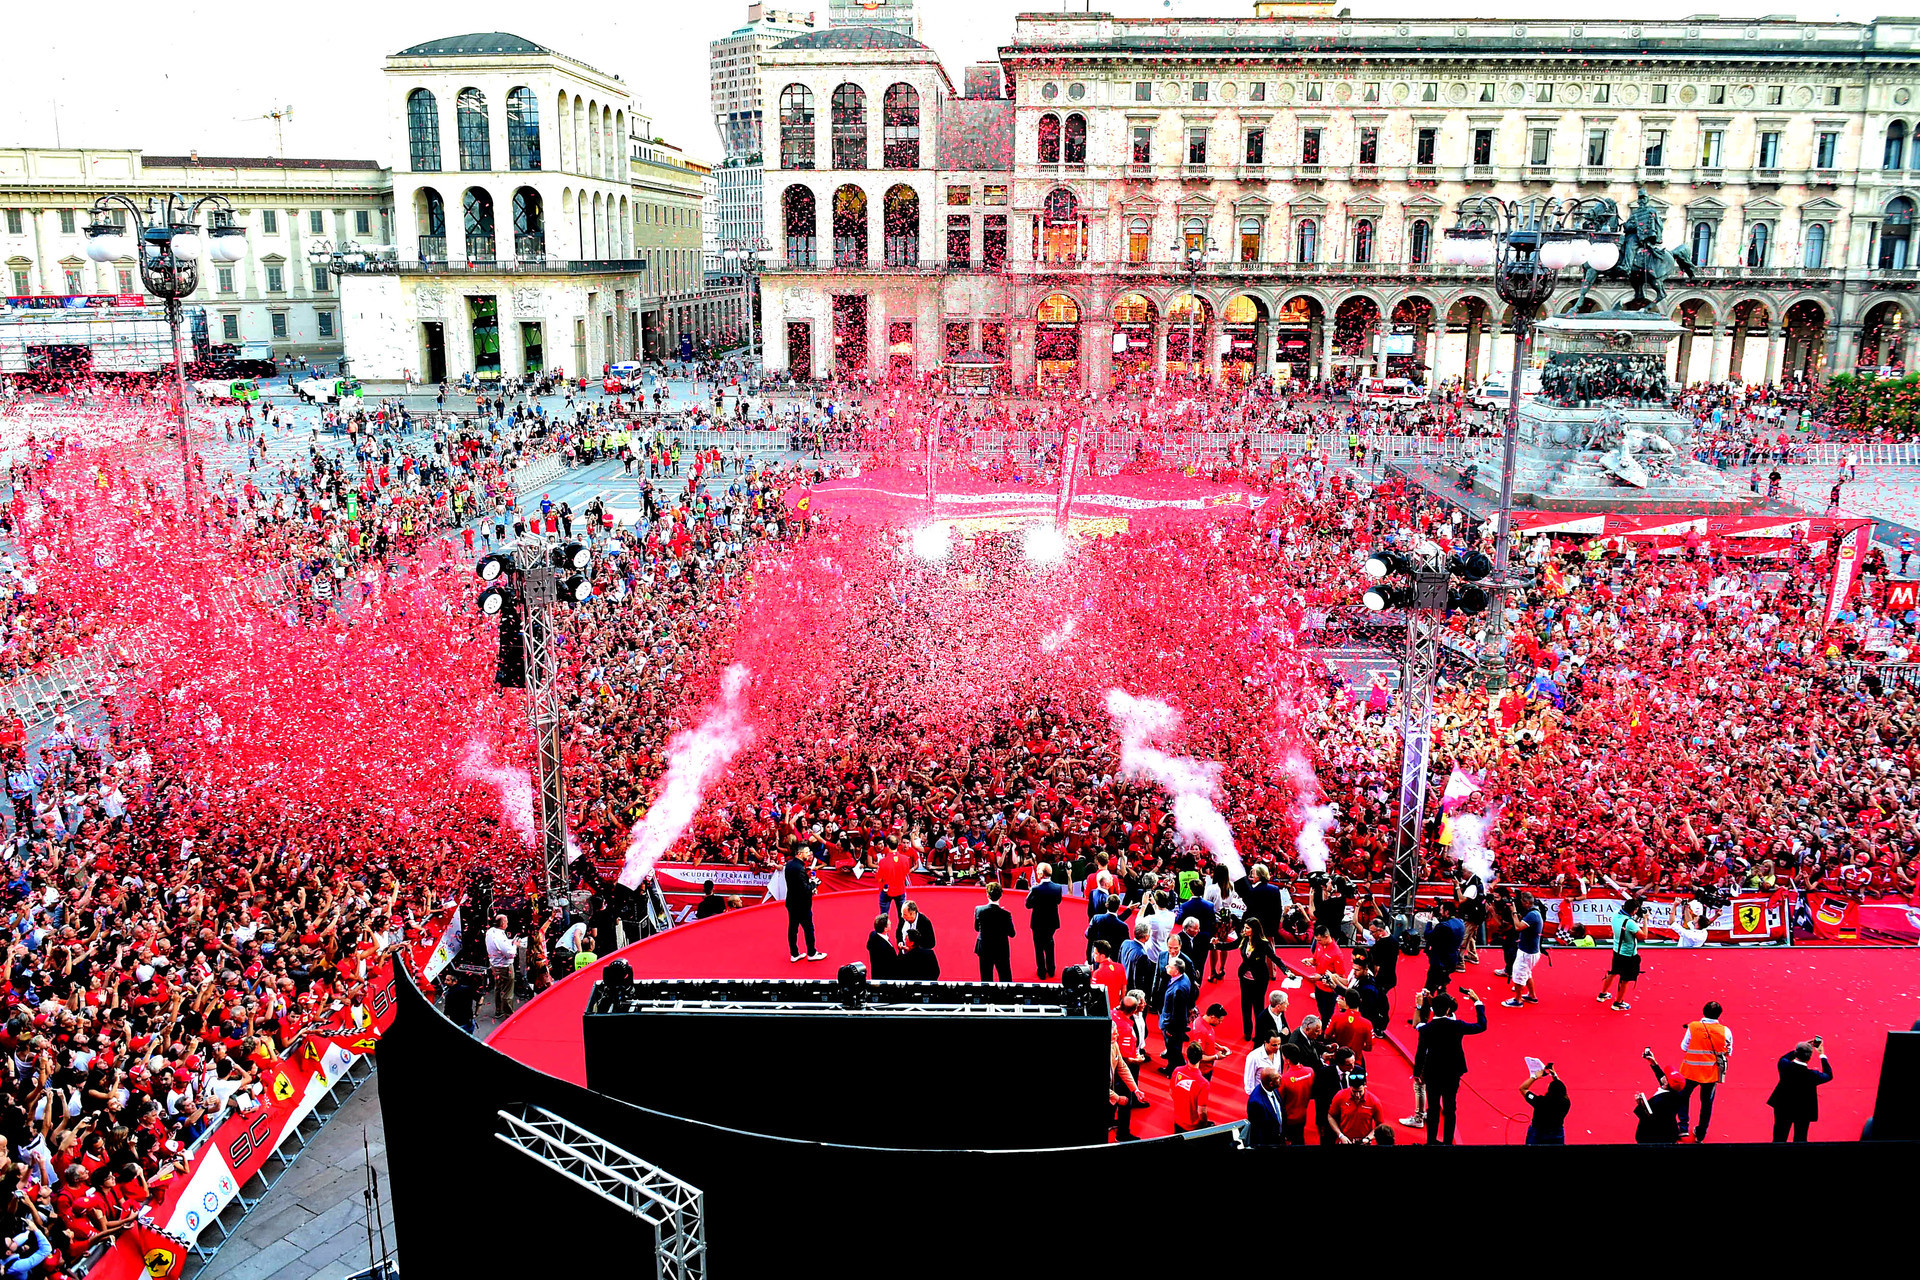 2019 Ferrari 90 Years celebration at Milan | 4 Sept 2019 website 15.jpg